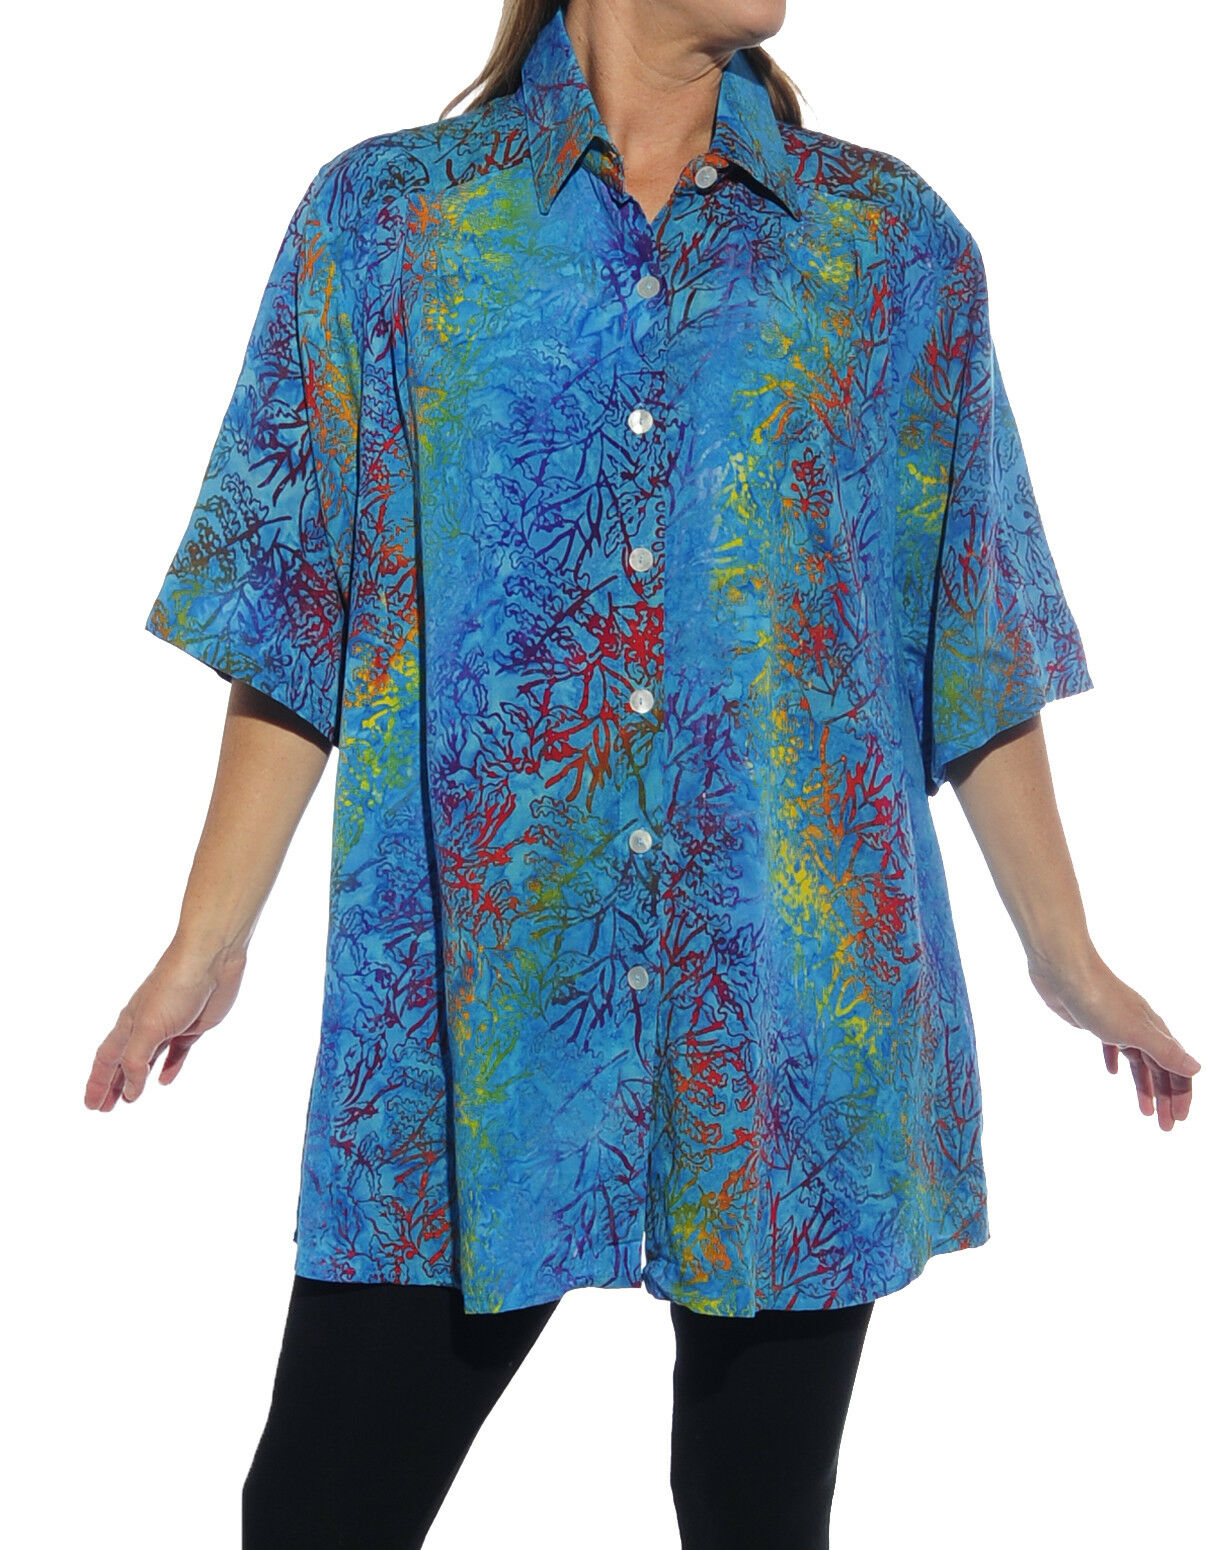 WeBeBop Women's Plus Size Seychelles New Tunic Top 0X 1X 2X 3X 4X 5X 6X